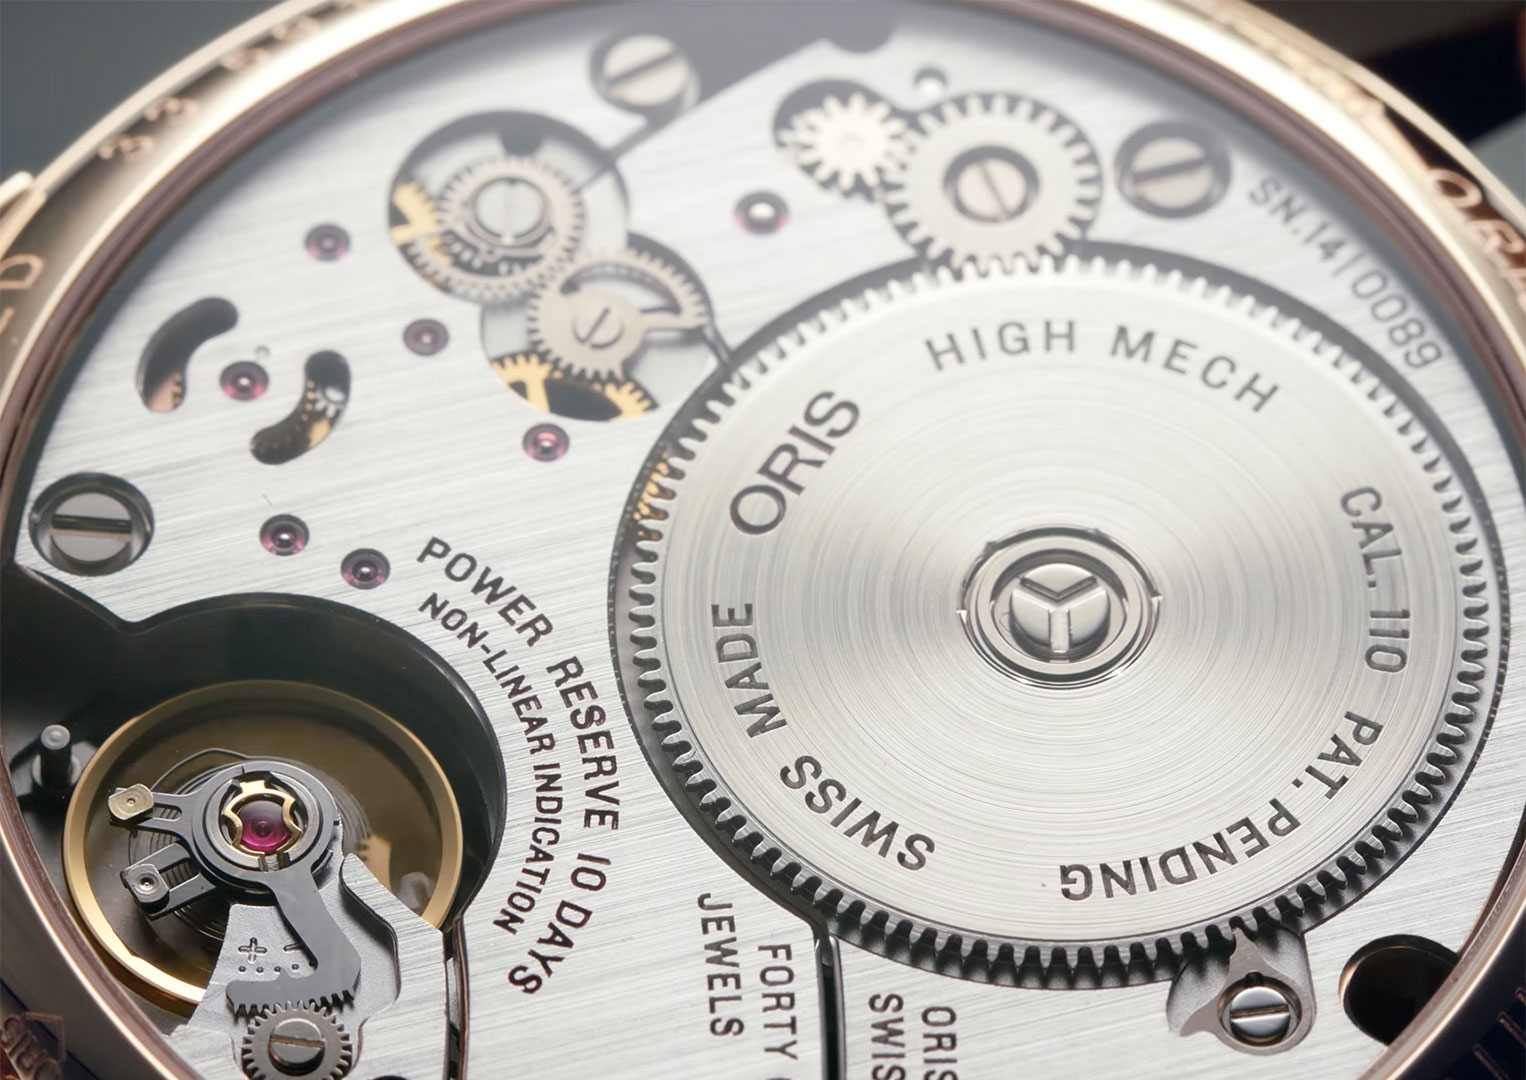 The Oris Calibre 110 was first introduced in 2014